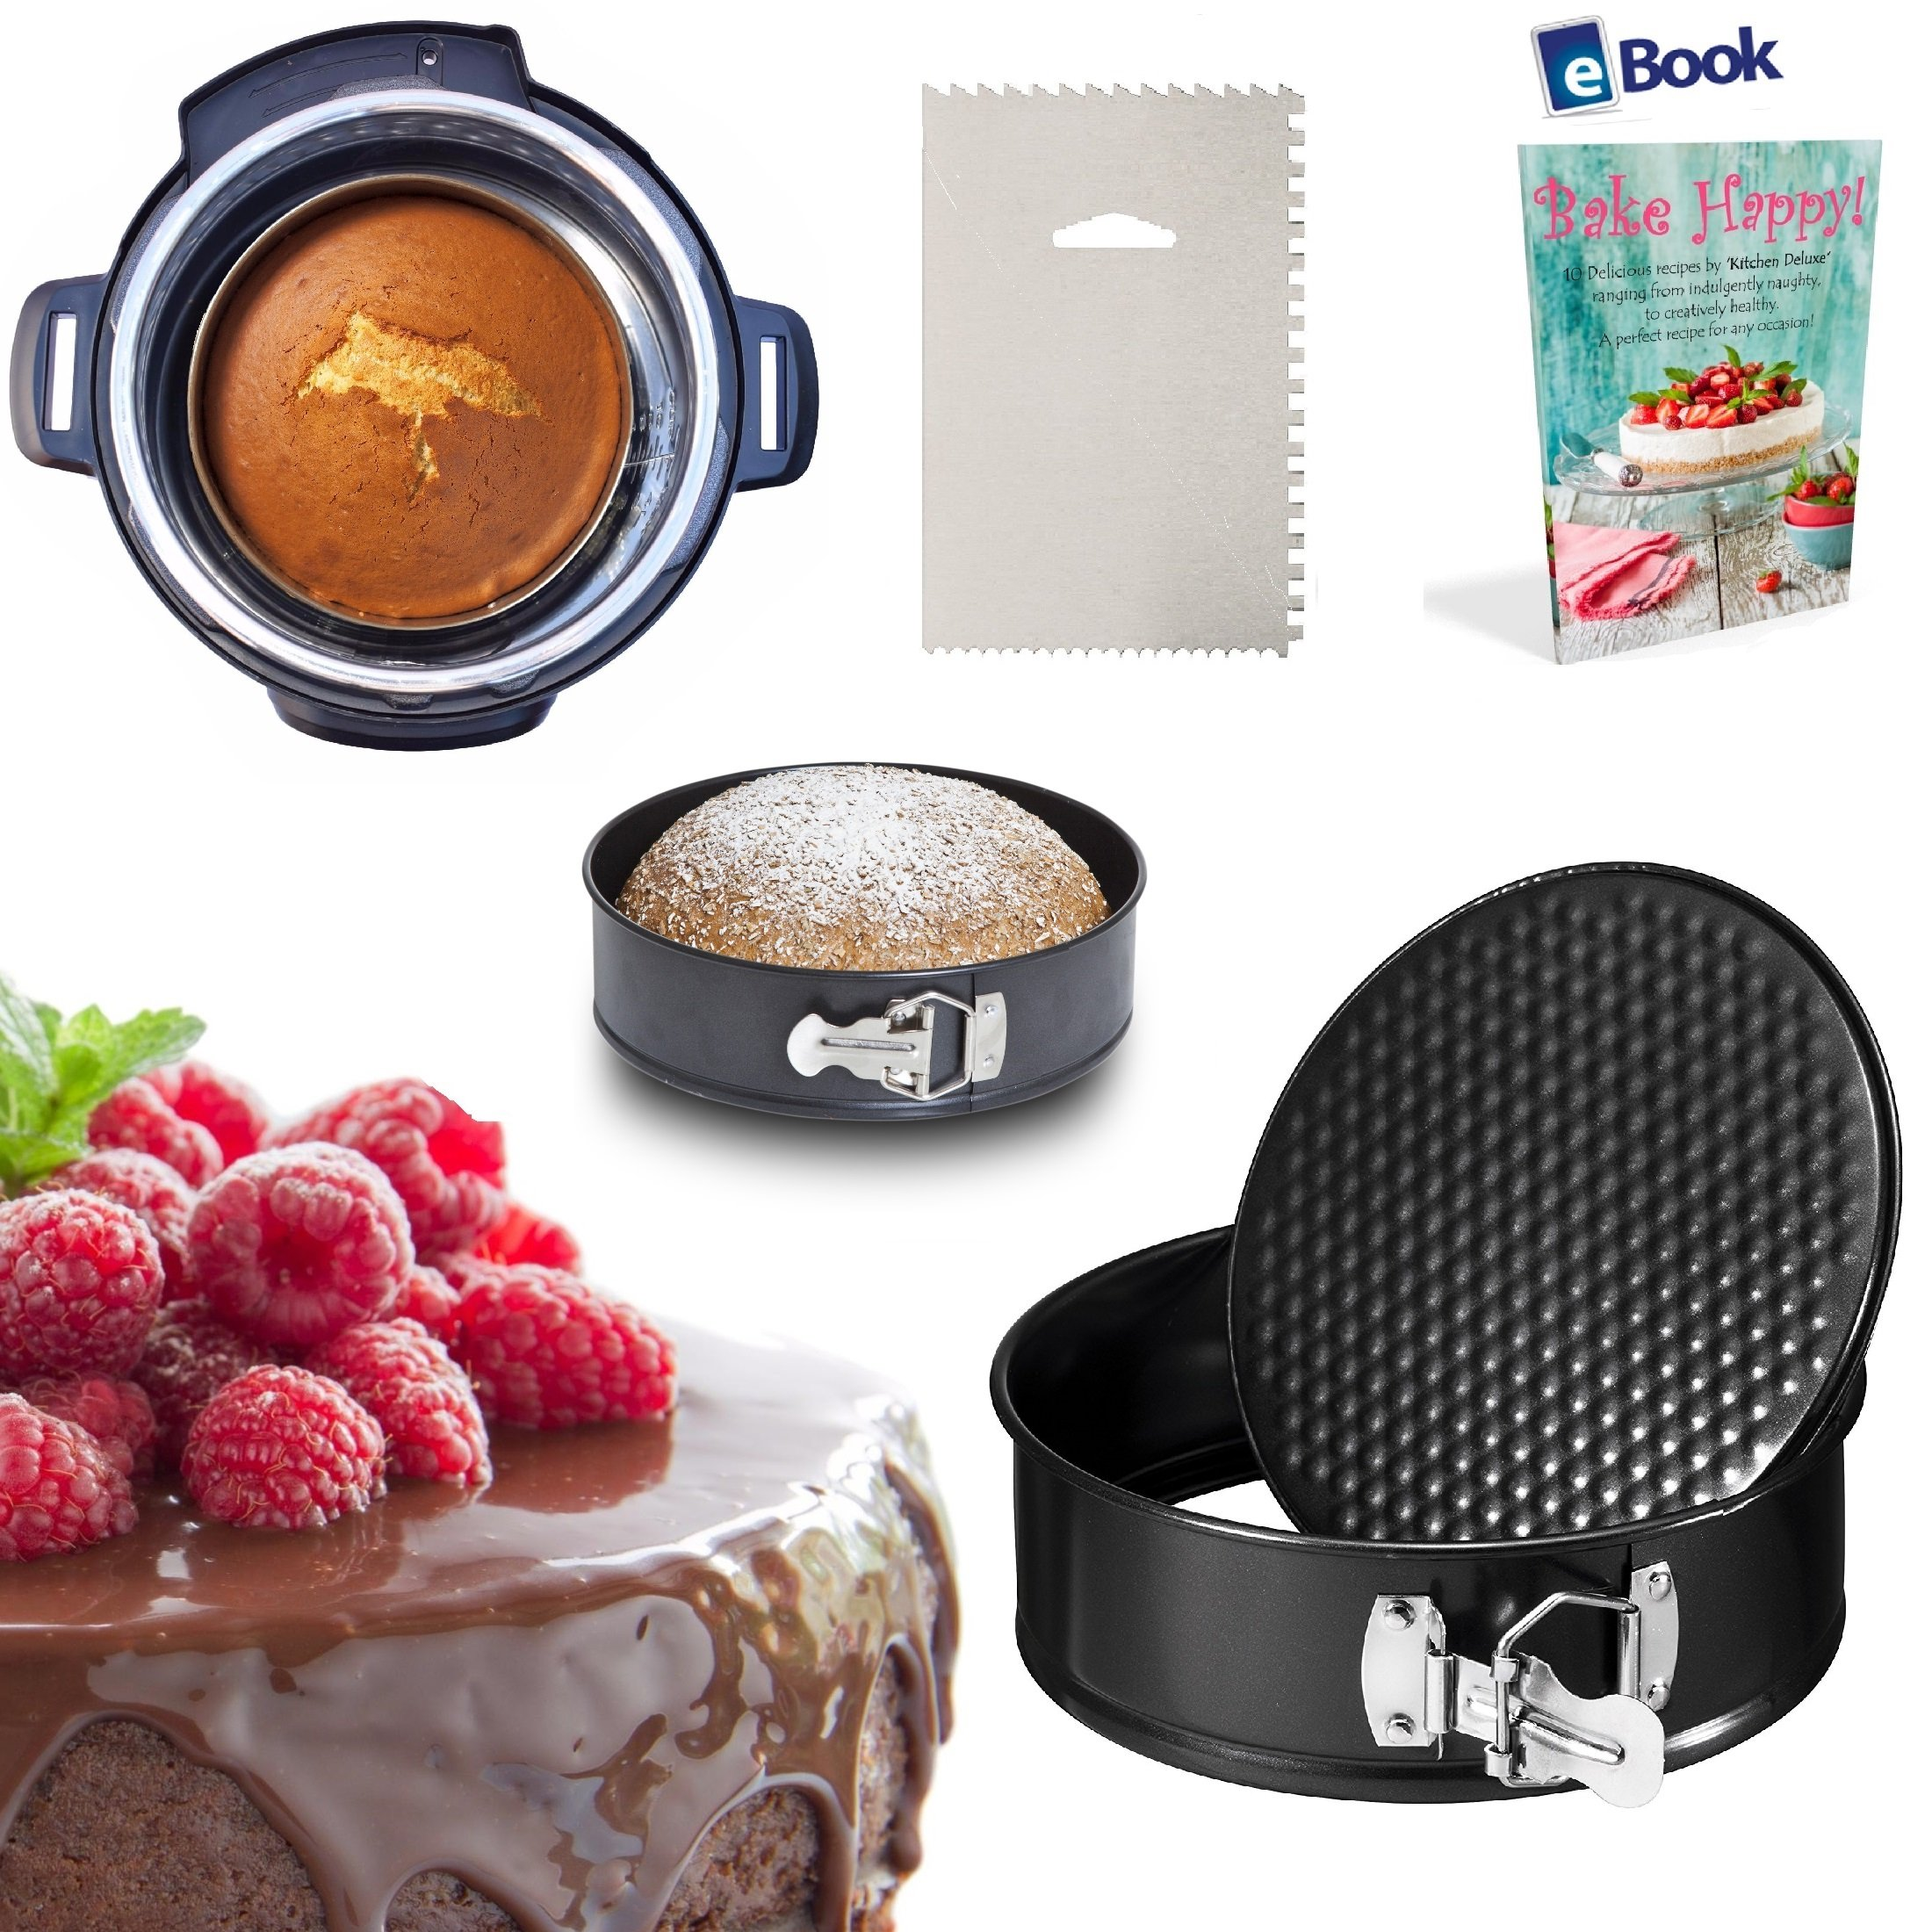 PREMIUM Springform Cake Pan - 7 Inch - BEST Bundle - Fits Instant Pot Pressure Cooker 5, 6 Qt & 8 Quart - BONUS Accessories - Icing Smoother + eBook - Round Cheesecake Tin | For Instapot